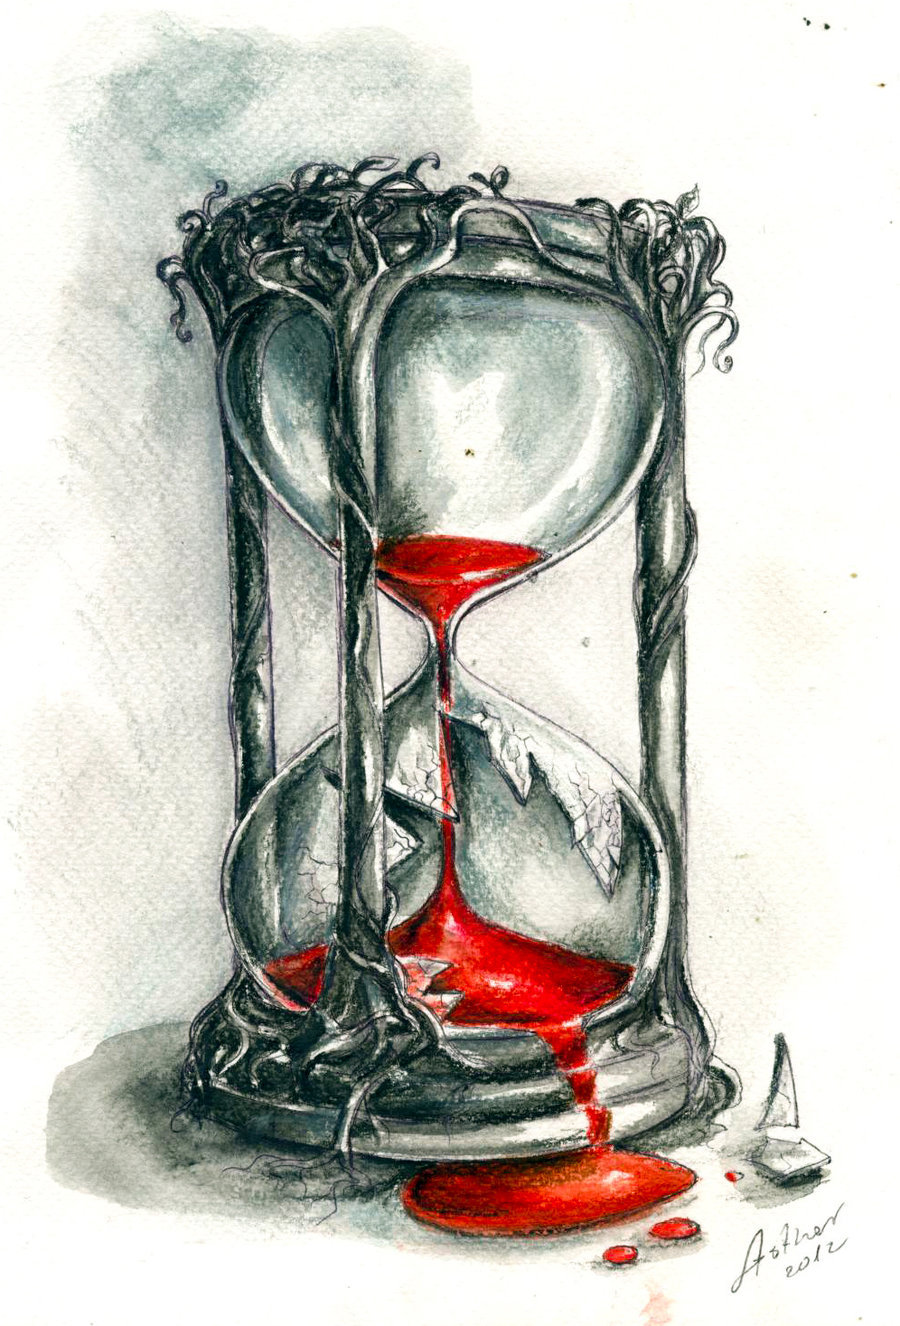 Time & blood